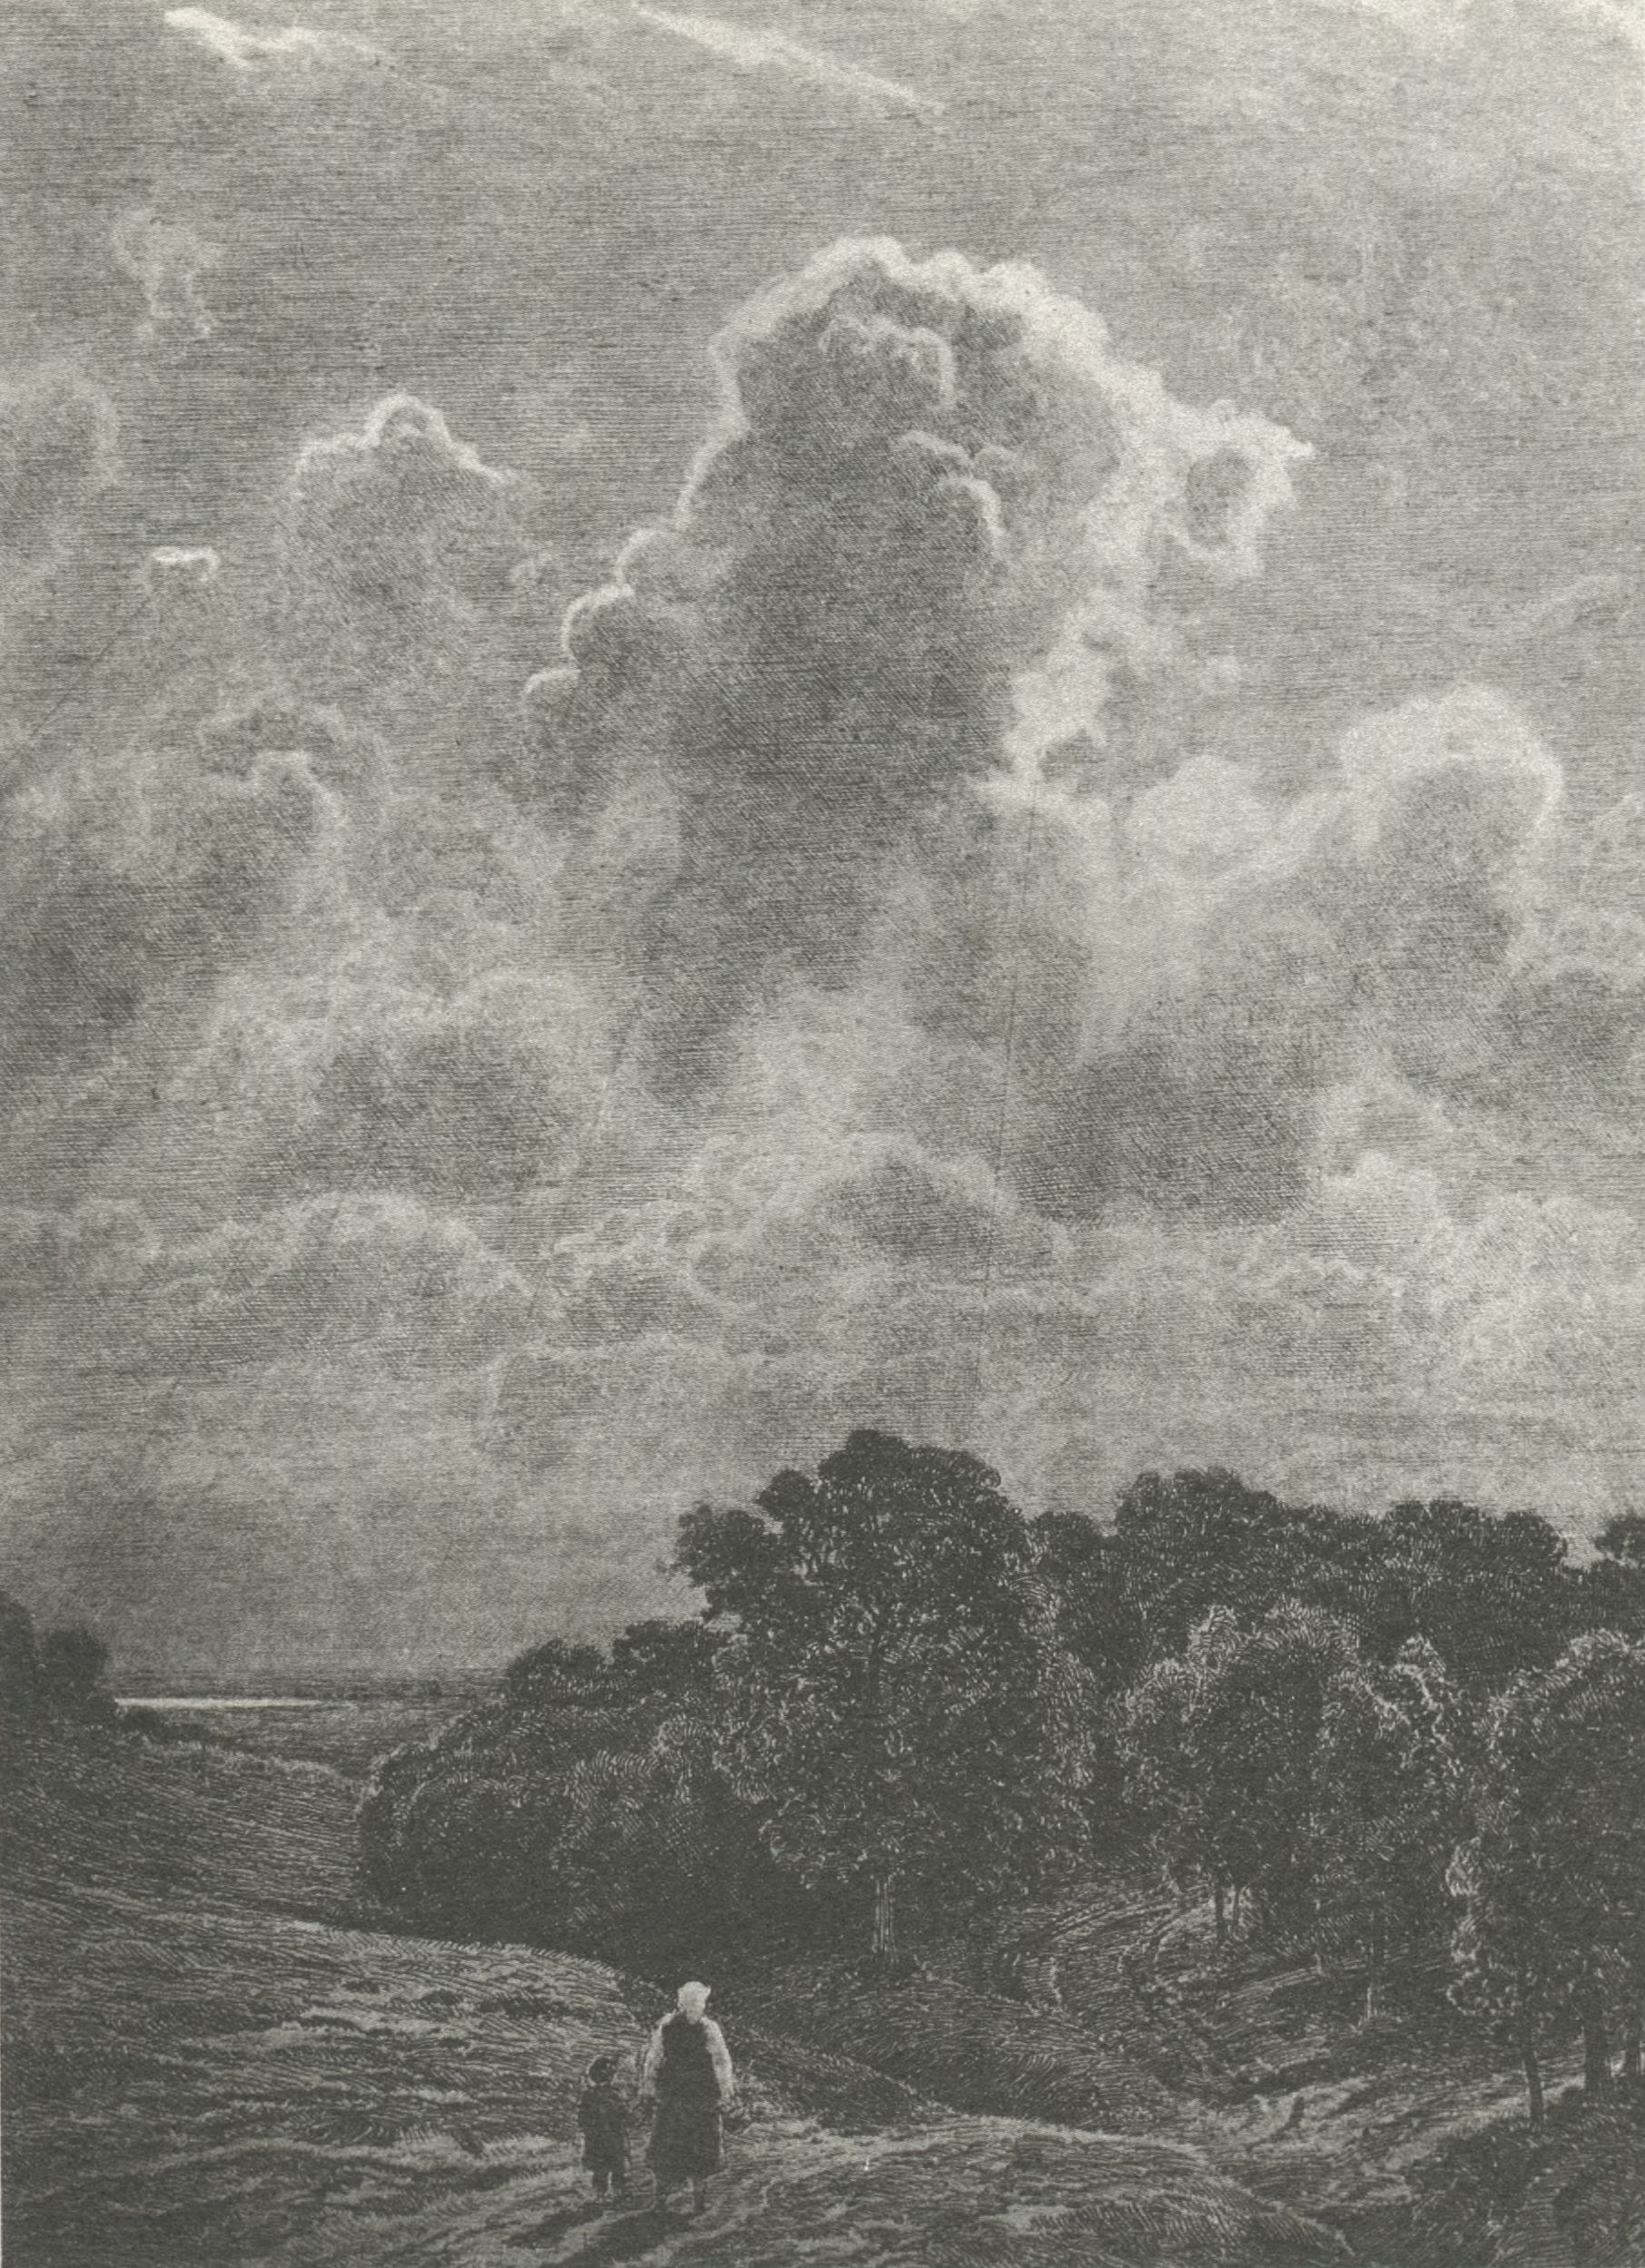 25. Облака над рощей. 1878 (Clouds Above the Grove. 1878)